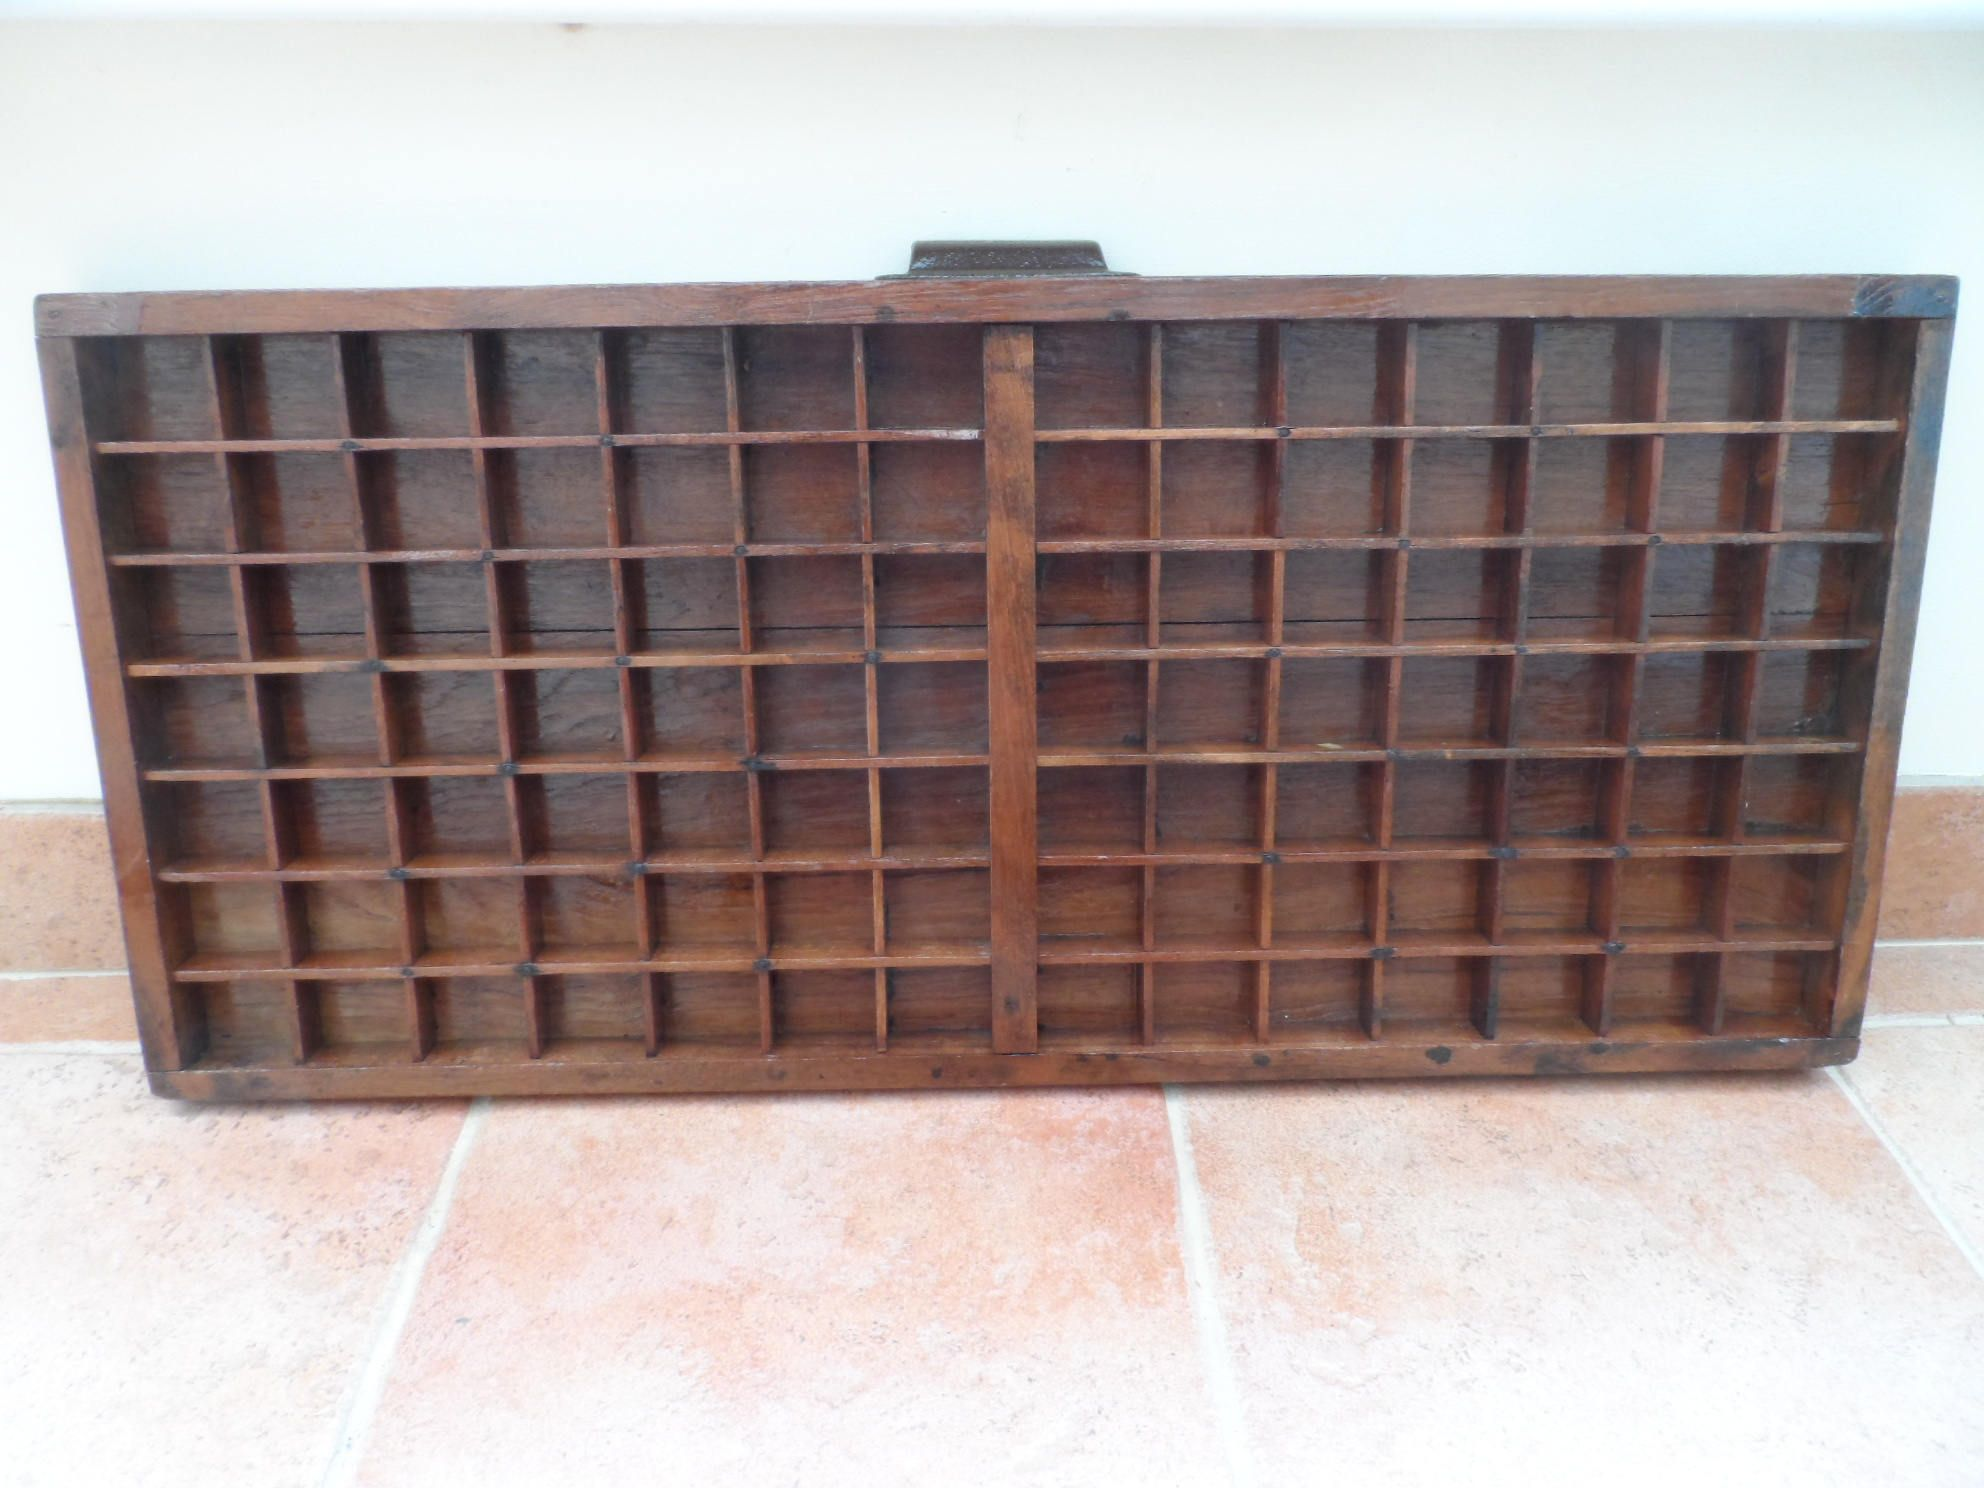 Large Wooden Printers Tray Letter Press Drawer Display Case Knick Knack Storage Lego Mini Figure Thimble Etc 2a By Vintagefoggy On Etsy